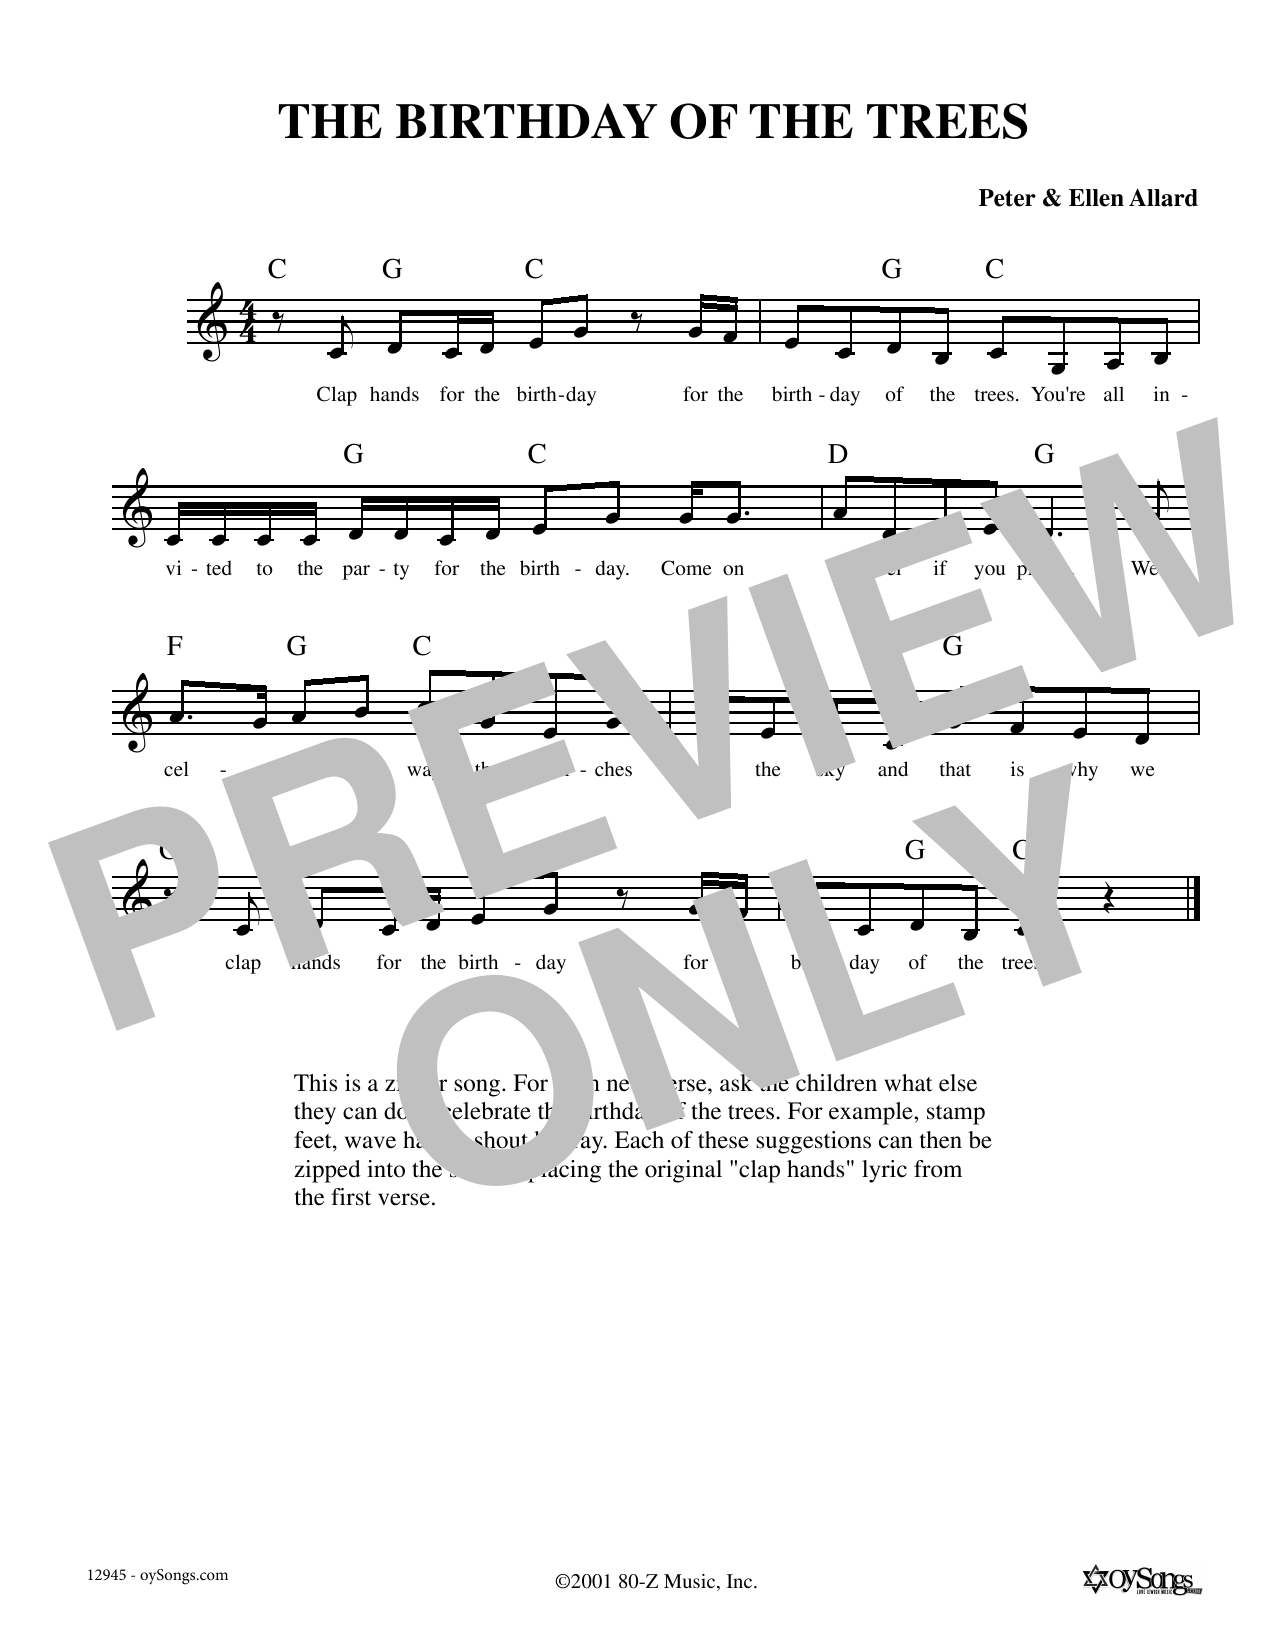 Ellen Allard Birthday Of The Trees sheet music notes and chords. Download Printable PDF.